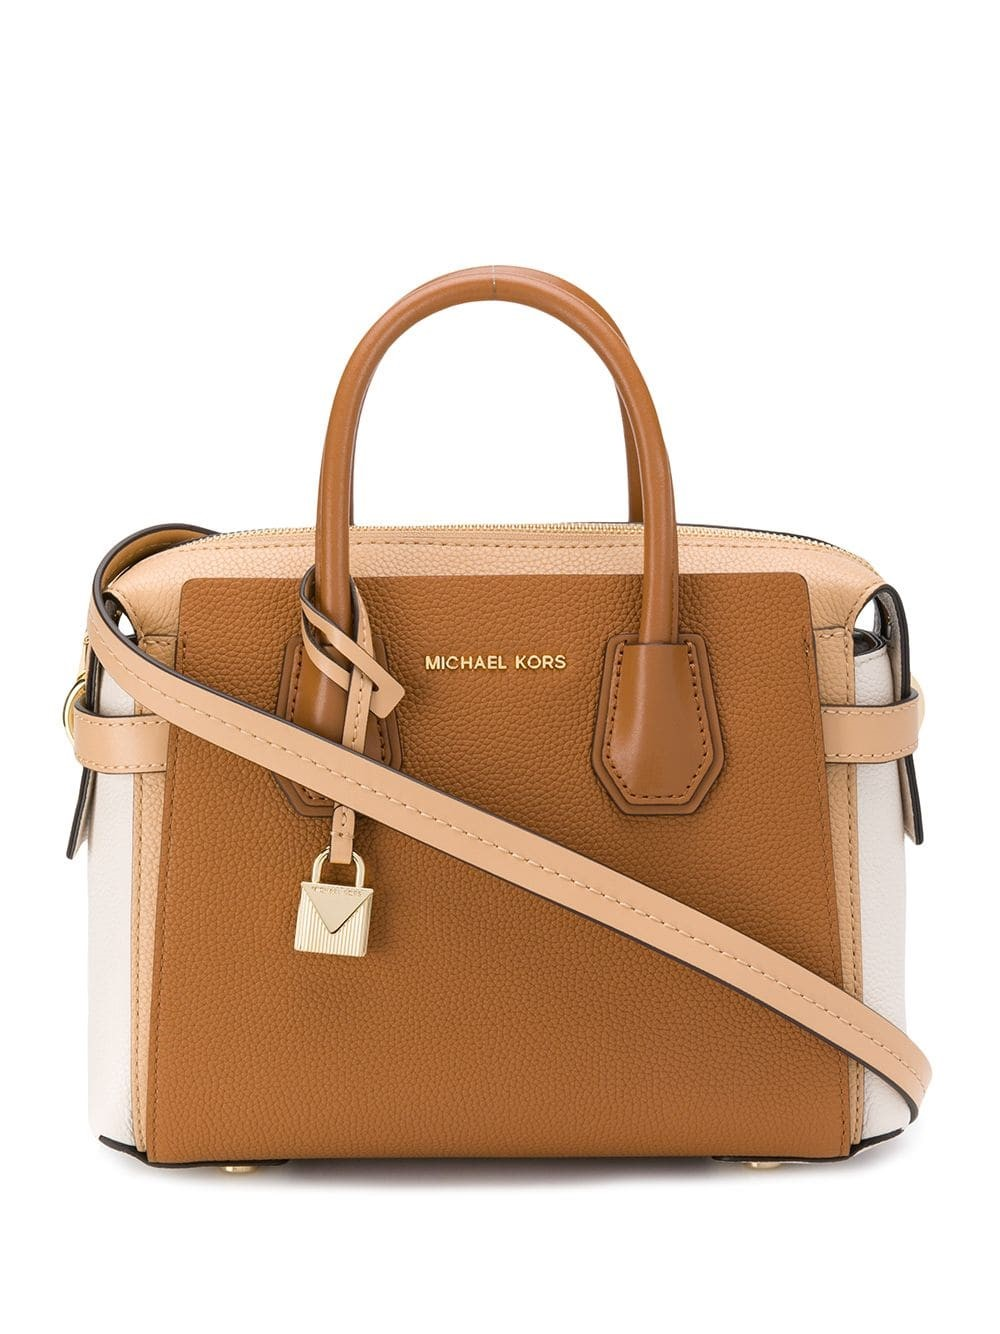 999ceed9534b michael kors mk TOTE BAG WITH STRAP available on montiboutique.com ...